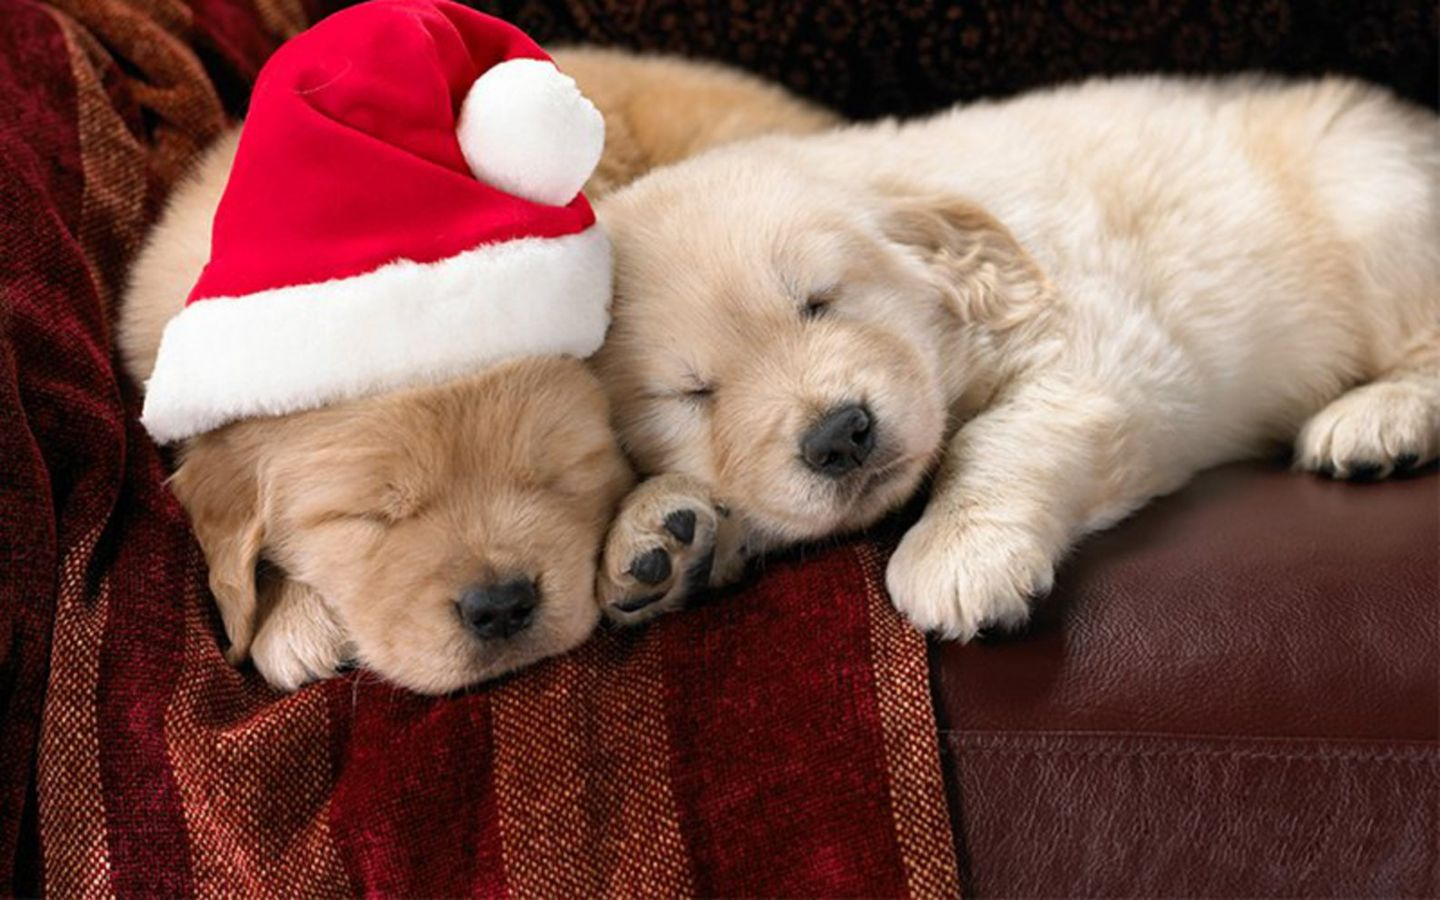 Free Download To Cute Puppy Wallpapers For Desktop Mobile